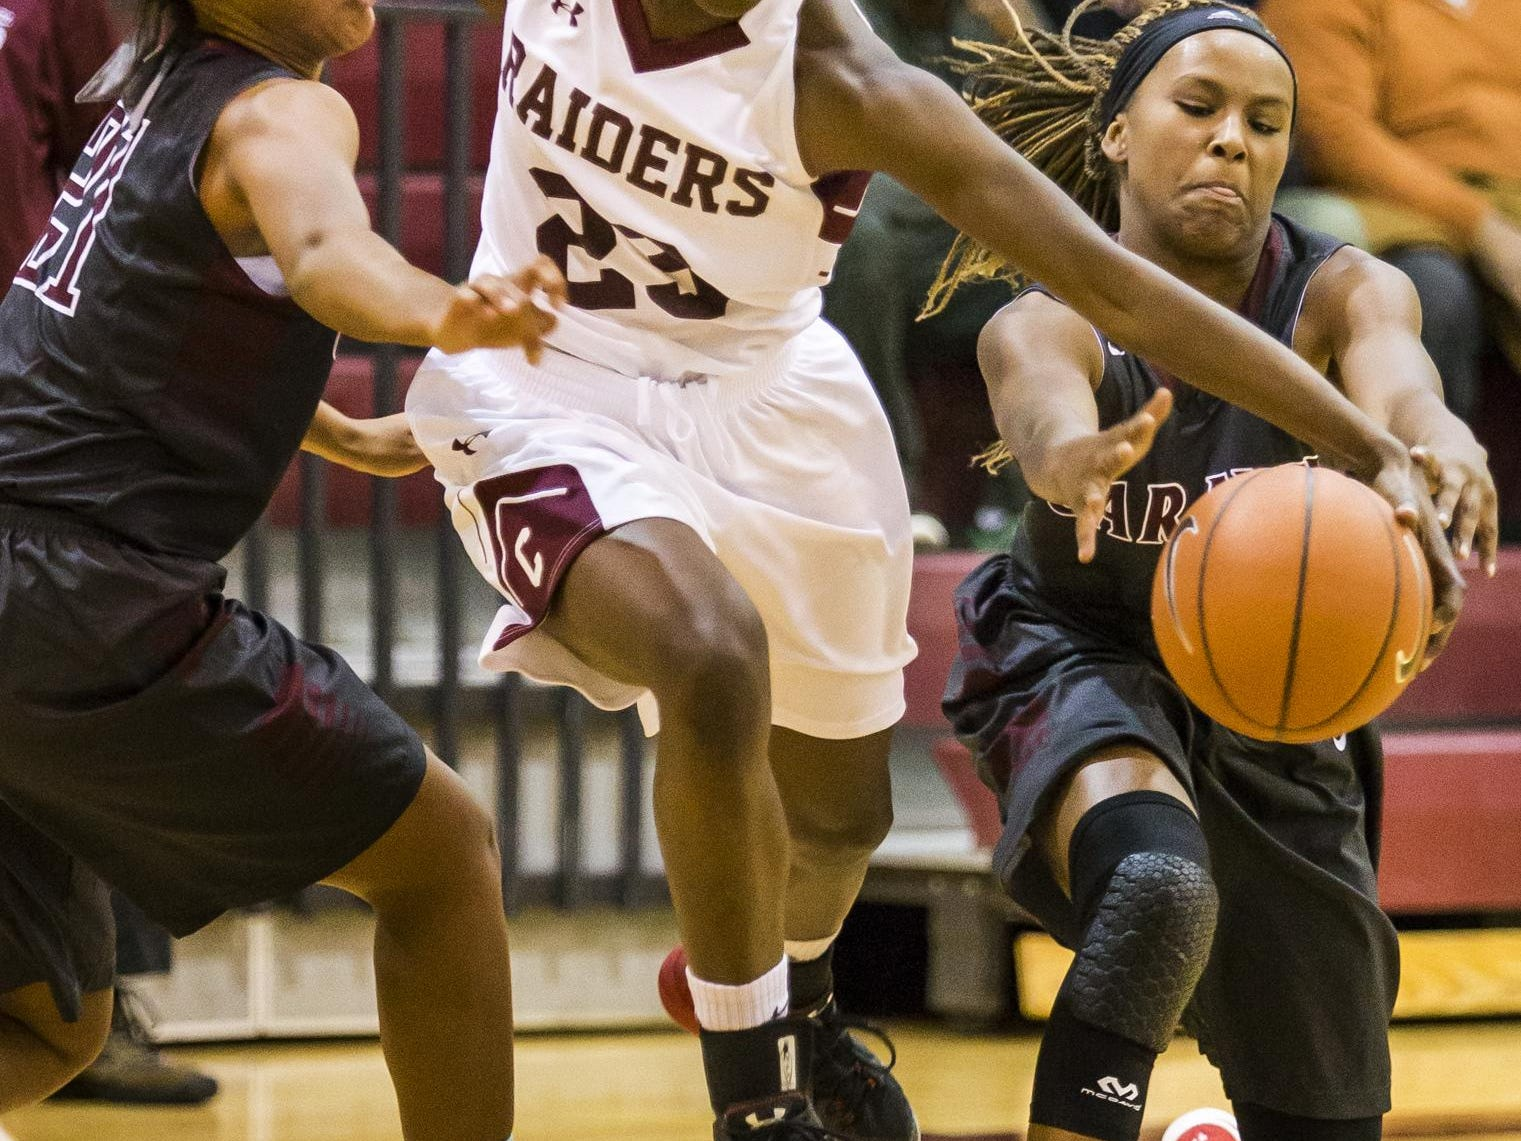 Caravel's Sasha Marvel (right) pulls the ball away from Concord's Zhan'e Snow (No. 23) as Snow tries to drive between Marvel and Kaylee Otlowski (left) in the first half of Caravel's 42-26 win over Concord at Concord High School on Monday night.